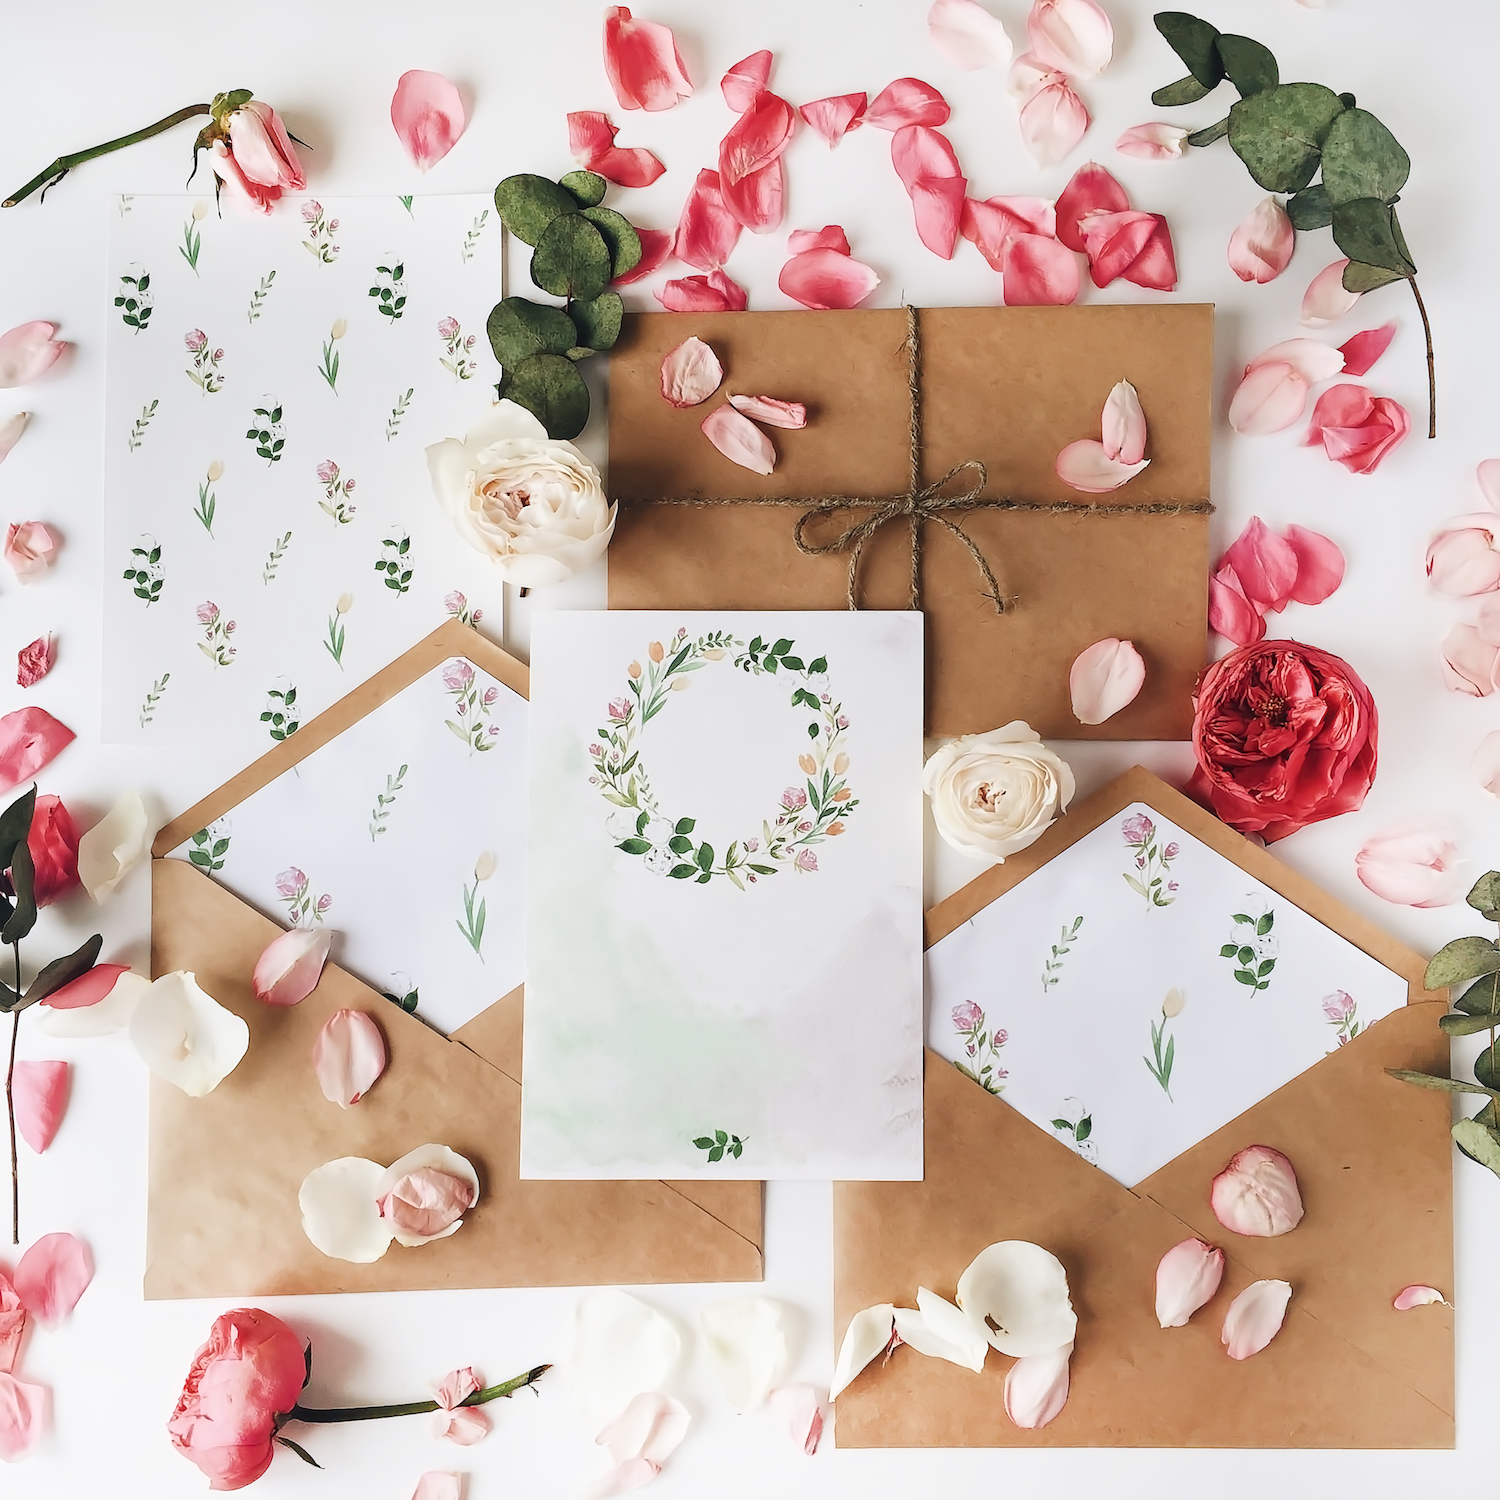 Workspace. Wedding invitation cards, craft envelopes, pink and red roses and green leaves on white background. Overhead view